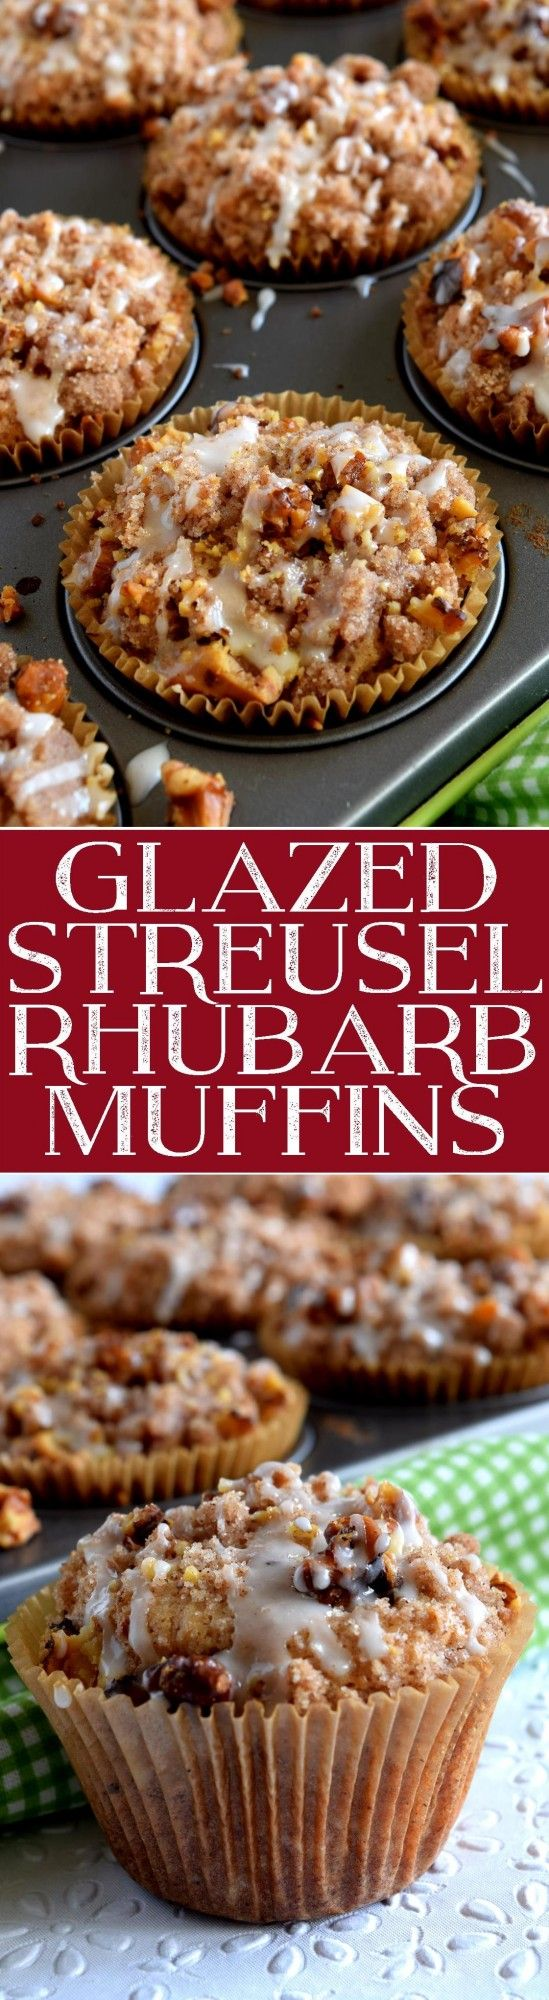 A blissfully tart muffin with just the right amount of sweet; Glazed Streusel Rhubarb Muffins consists of fresh rhubarb, walnuts, a crumb topping, and a gentle glazed drizzle.  Delicious!